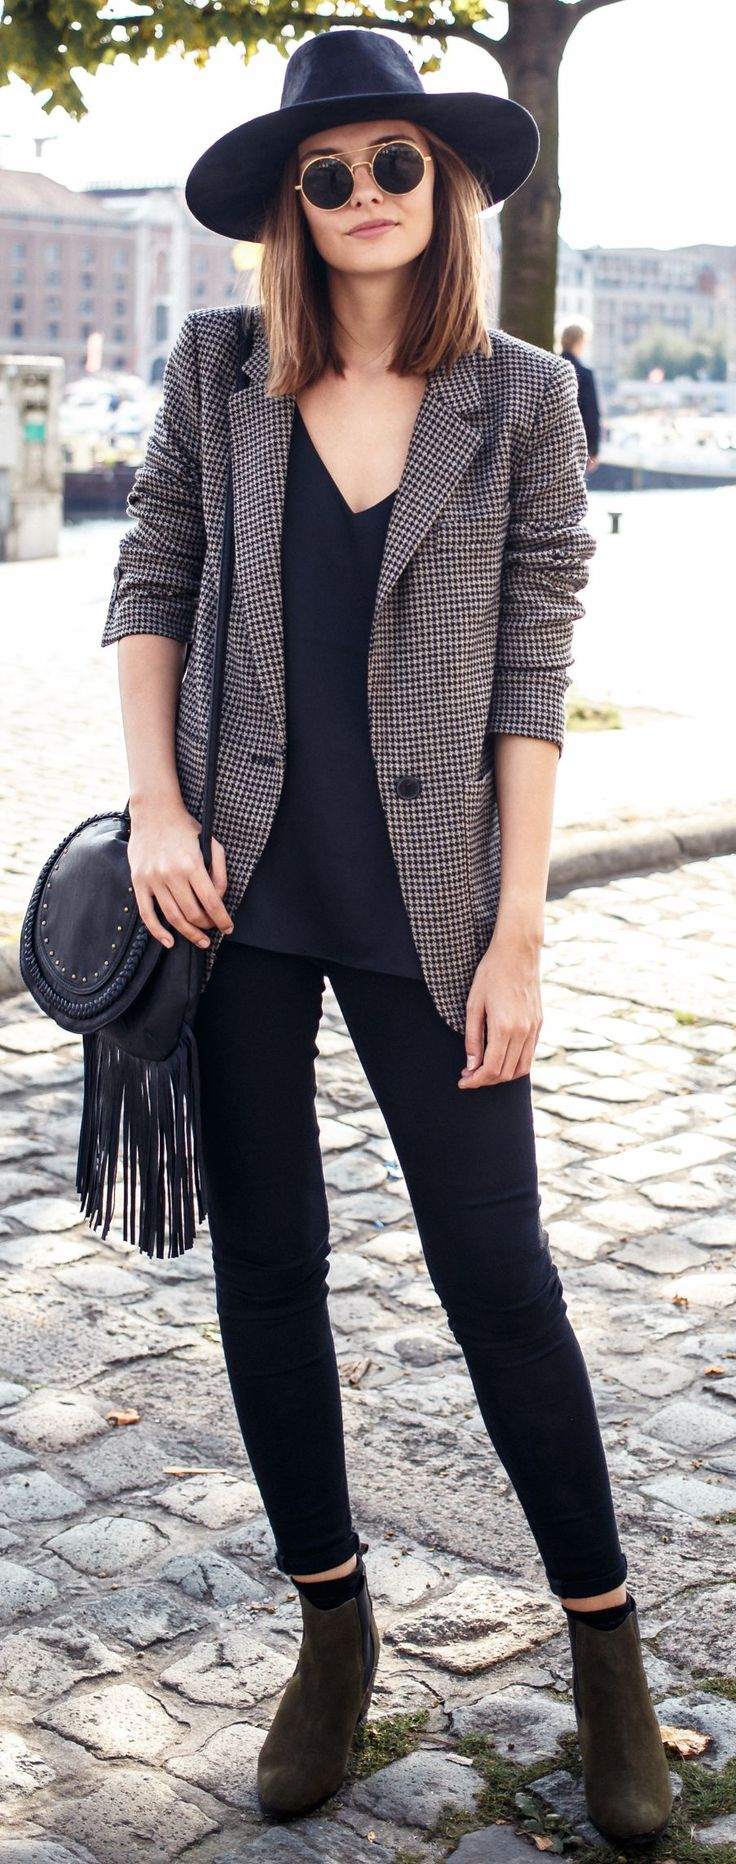 Polienne Urban Boho Chic Fall Street Style Inspo